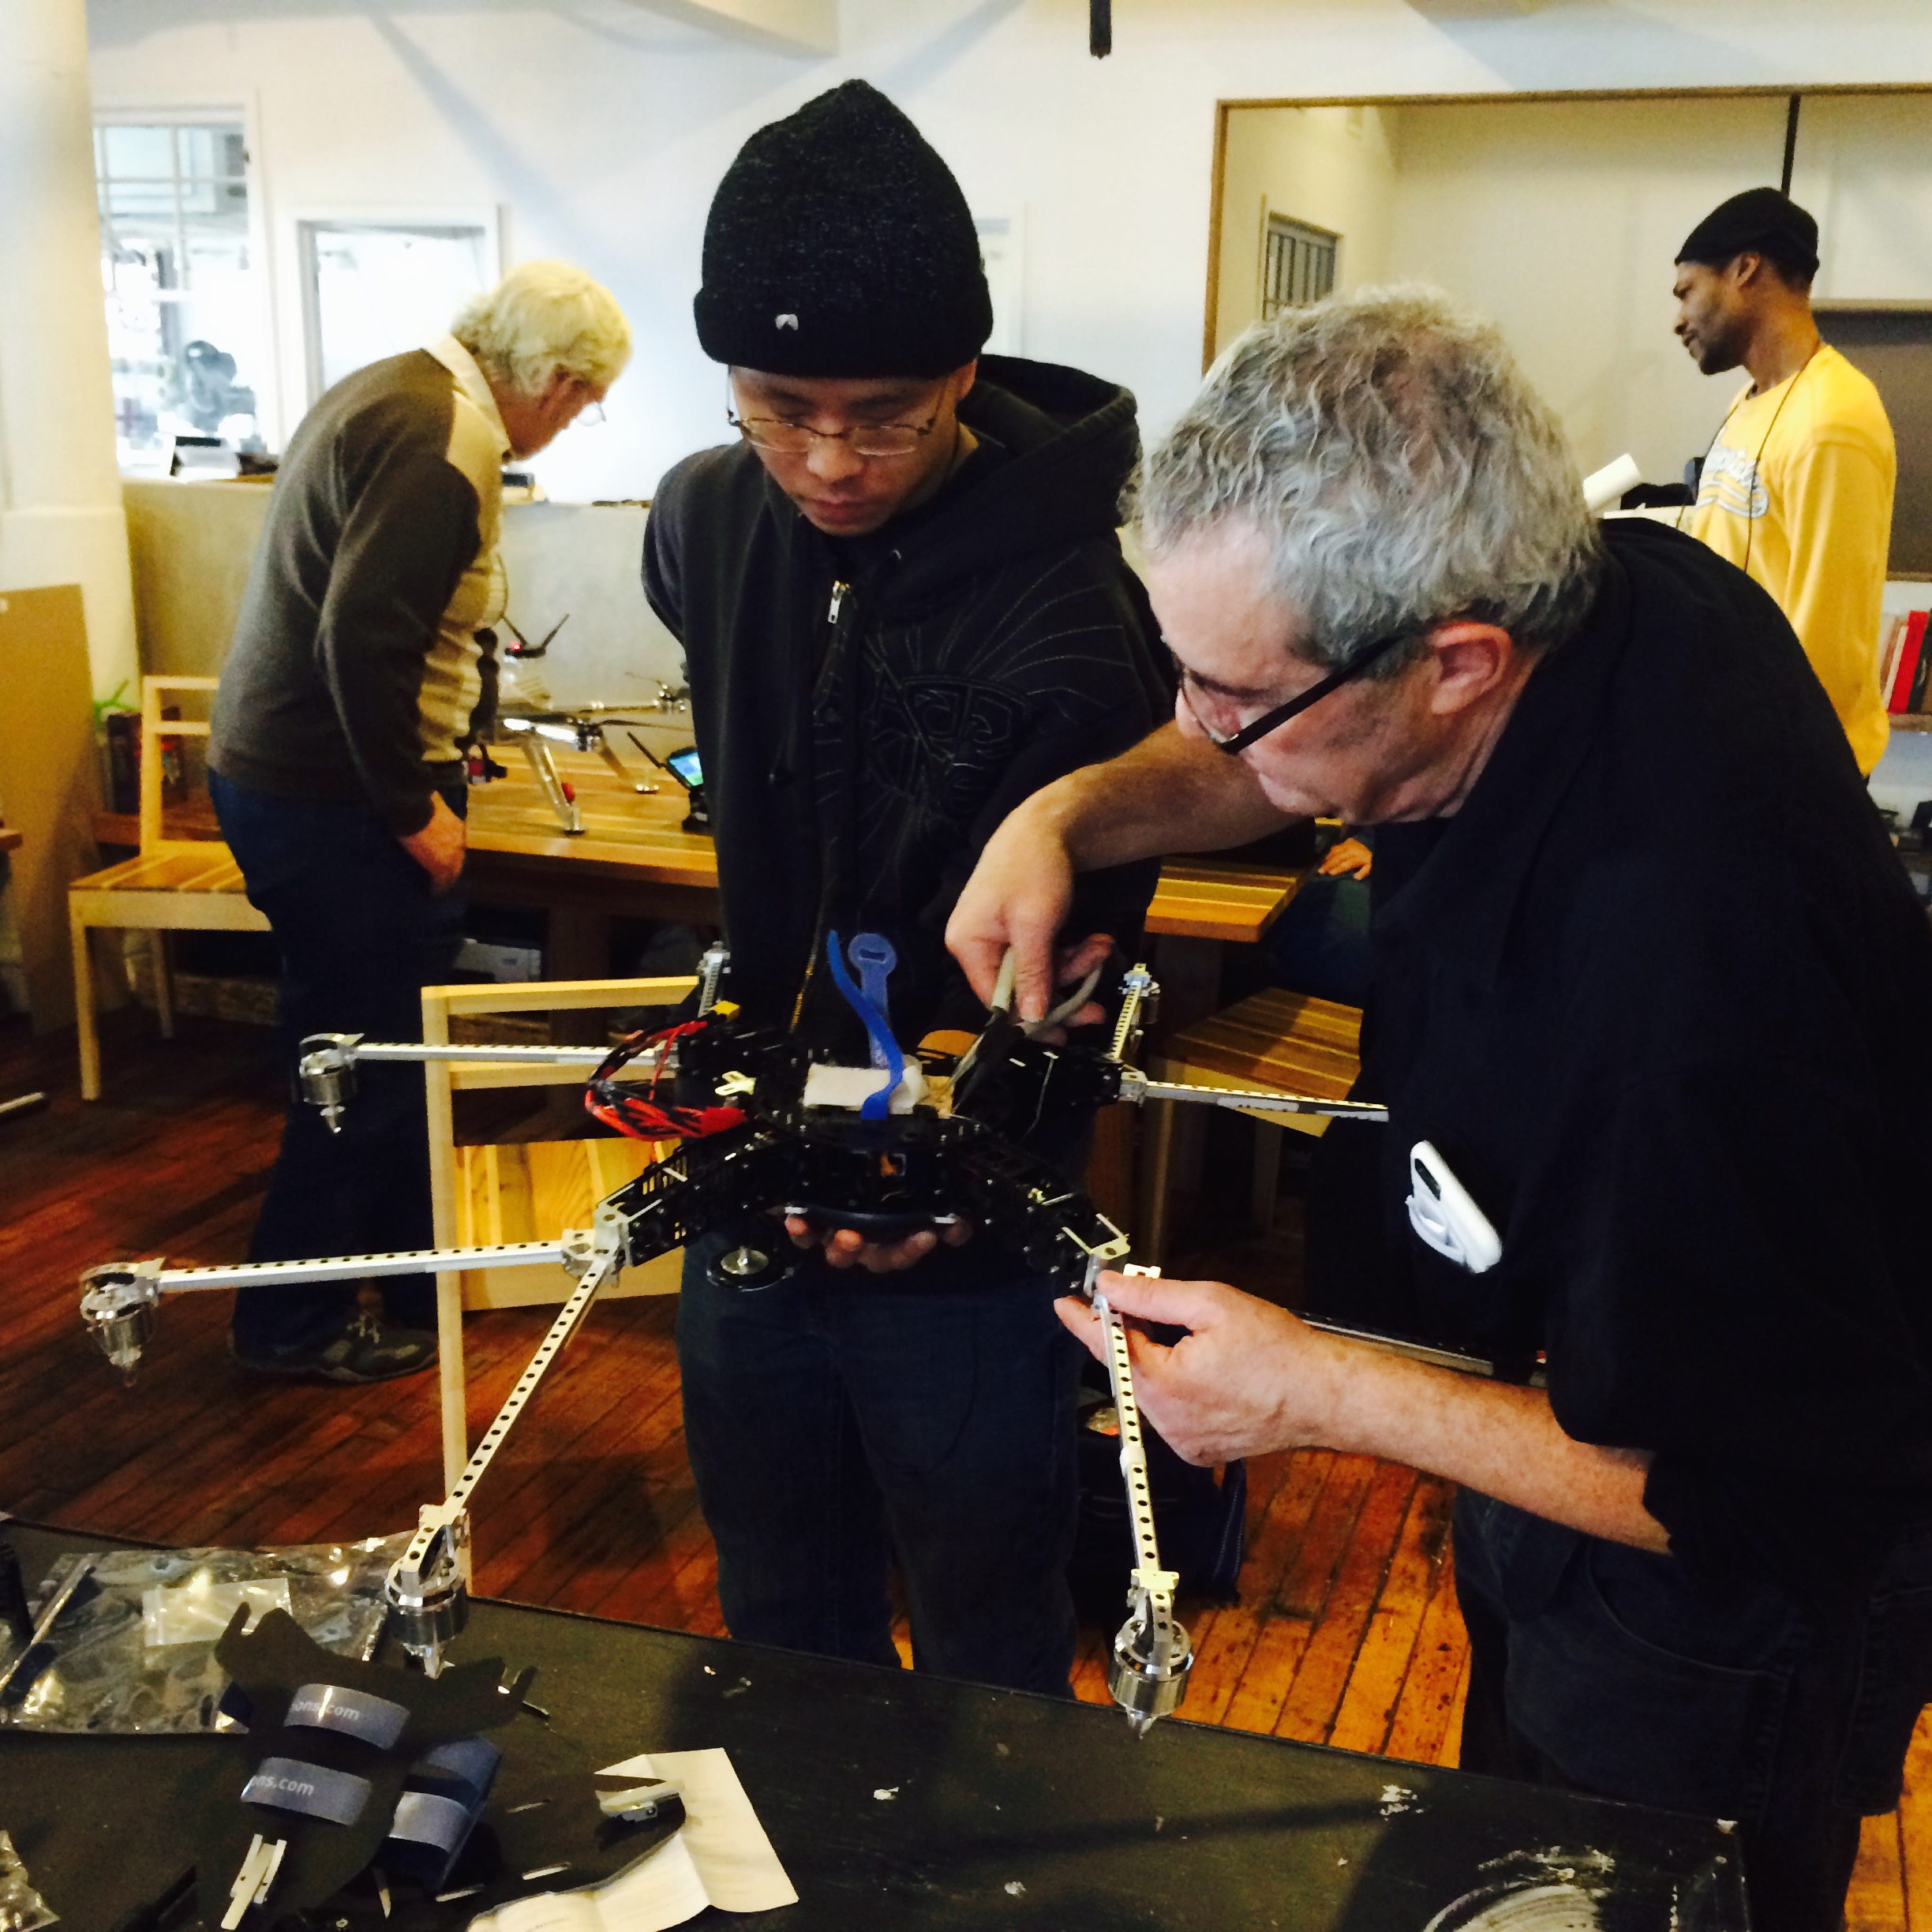 Drone building. Photo courtesy: Collab